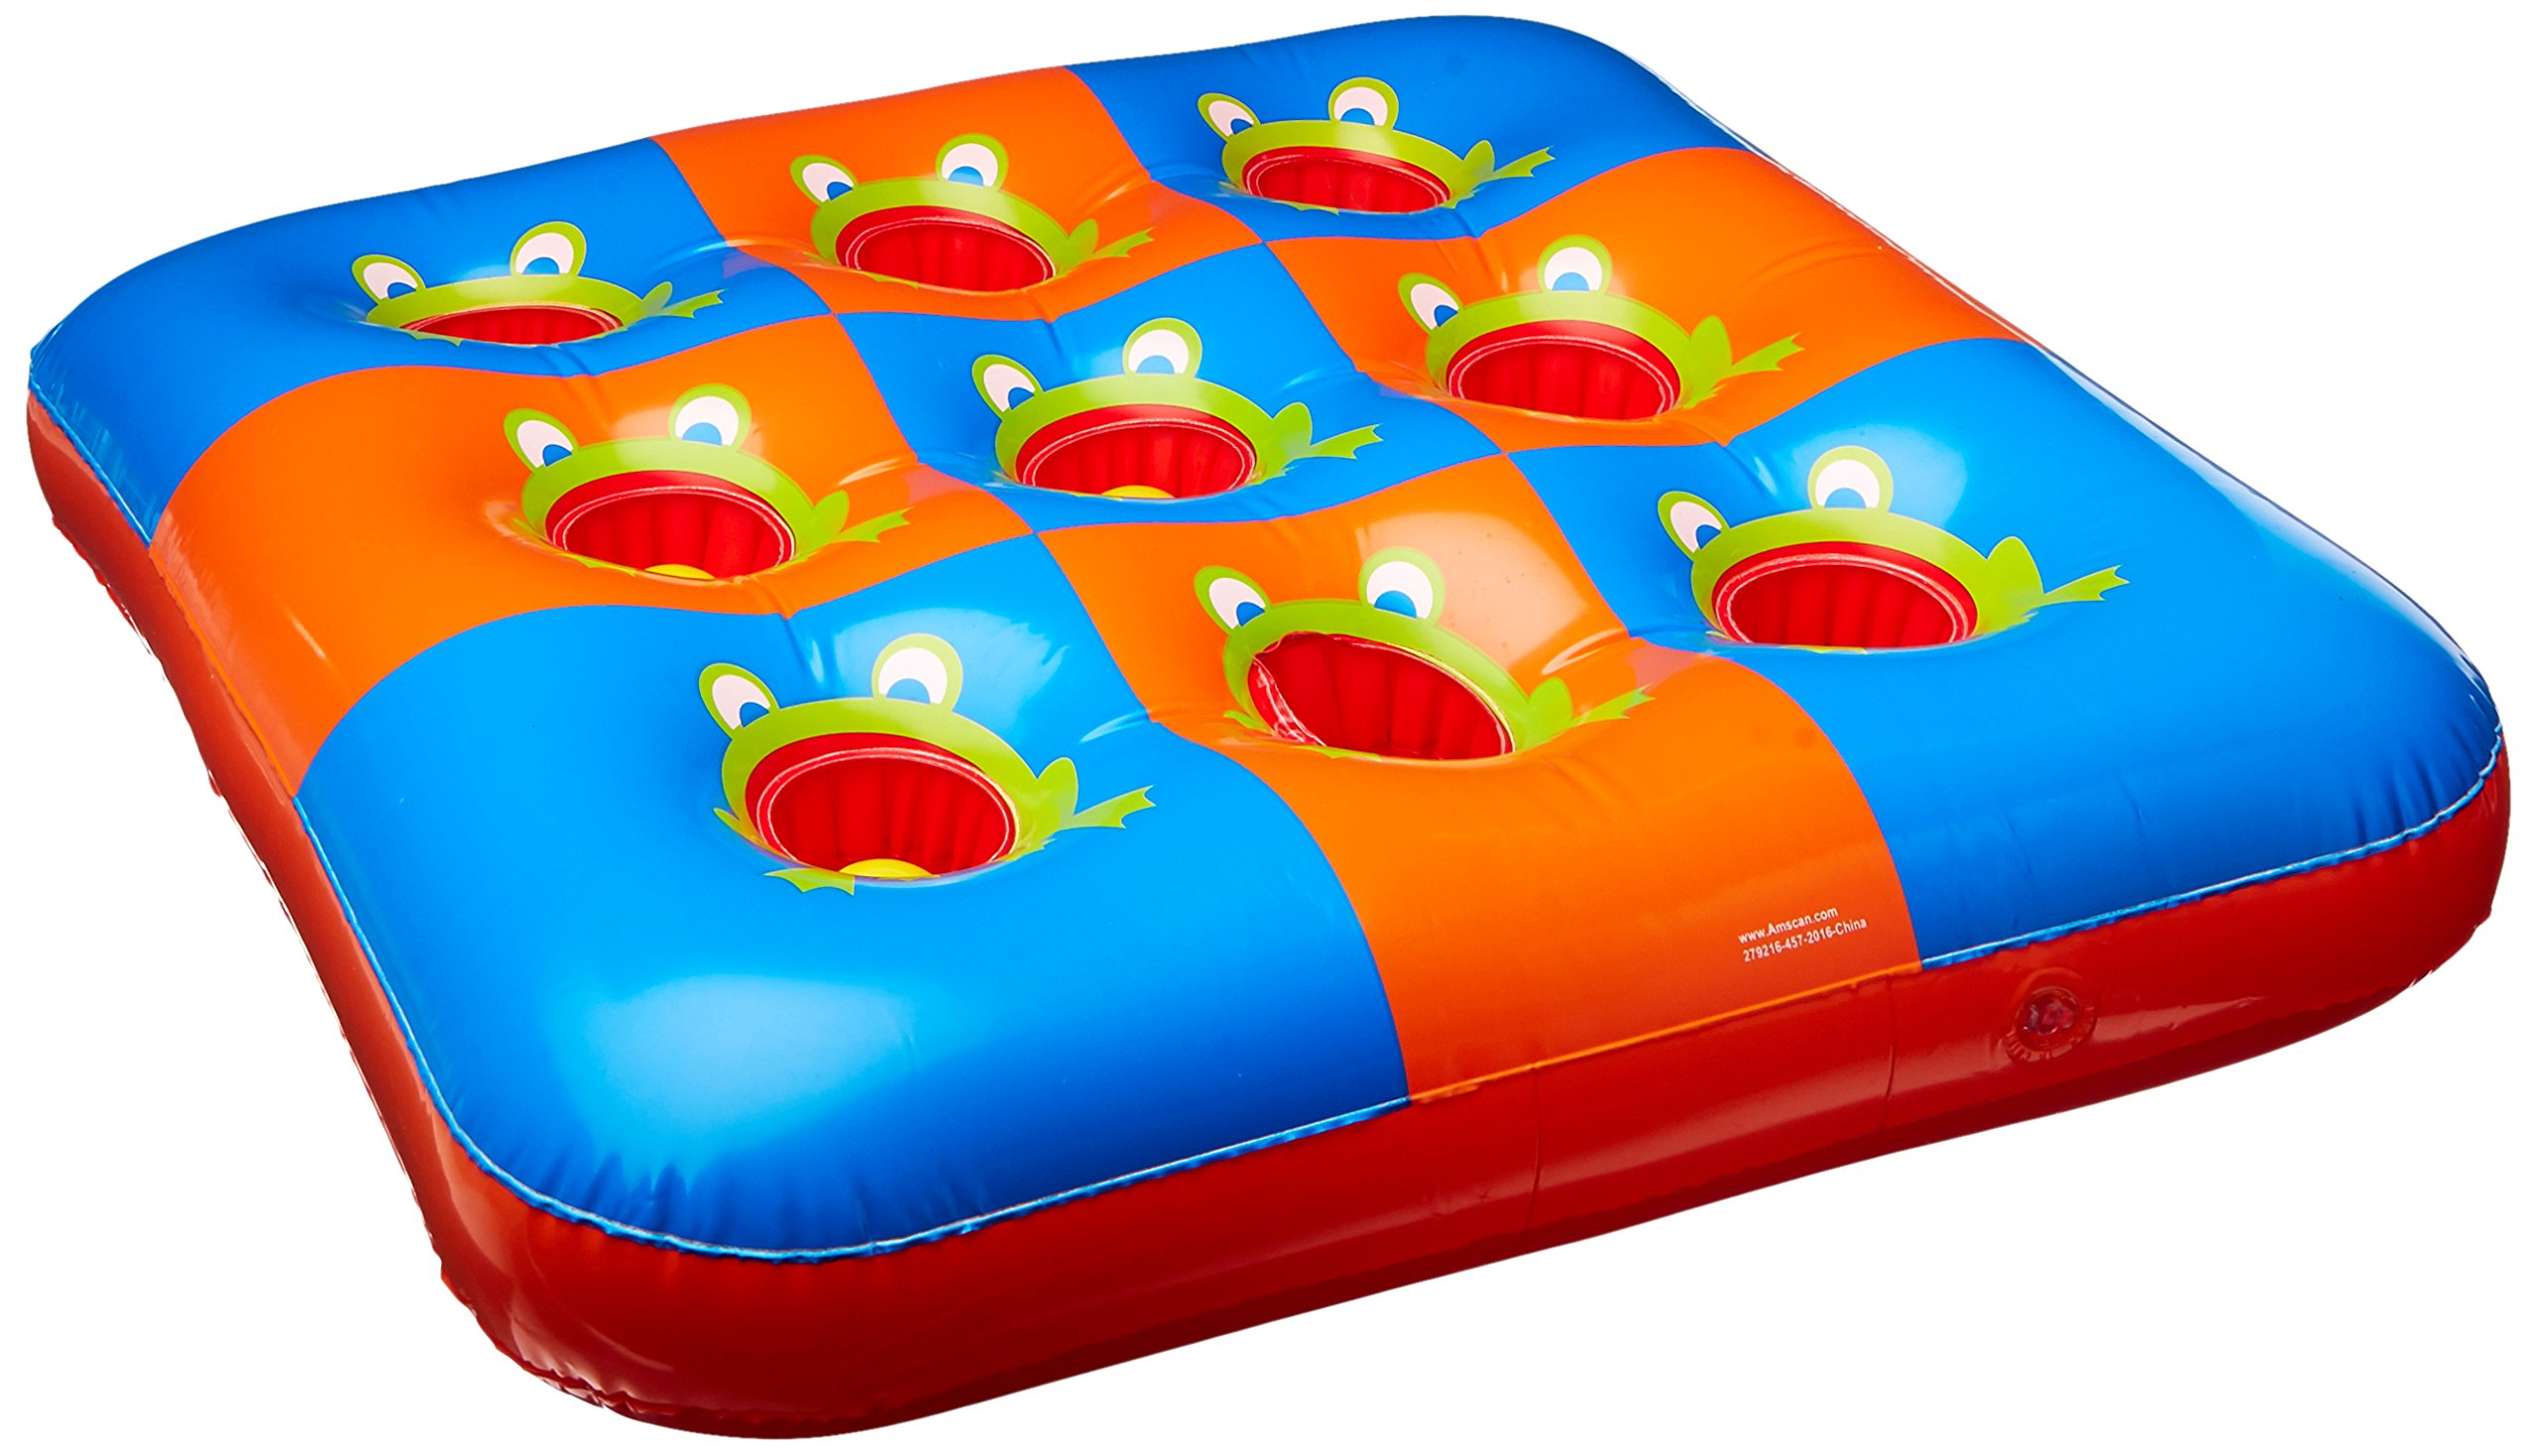 Carnival Fair Fun Inflatable 3 In A Row Game Party Activity, Plastic, 27'' x 27'', Pack of 9 by Amscan